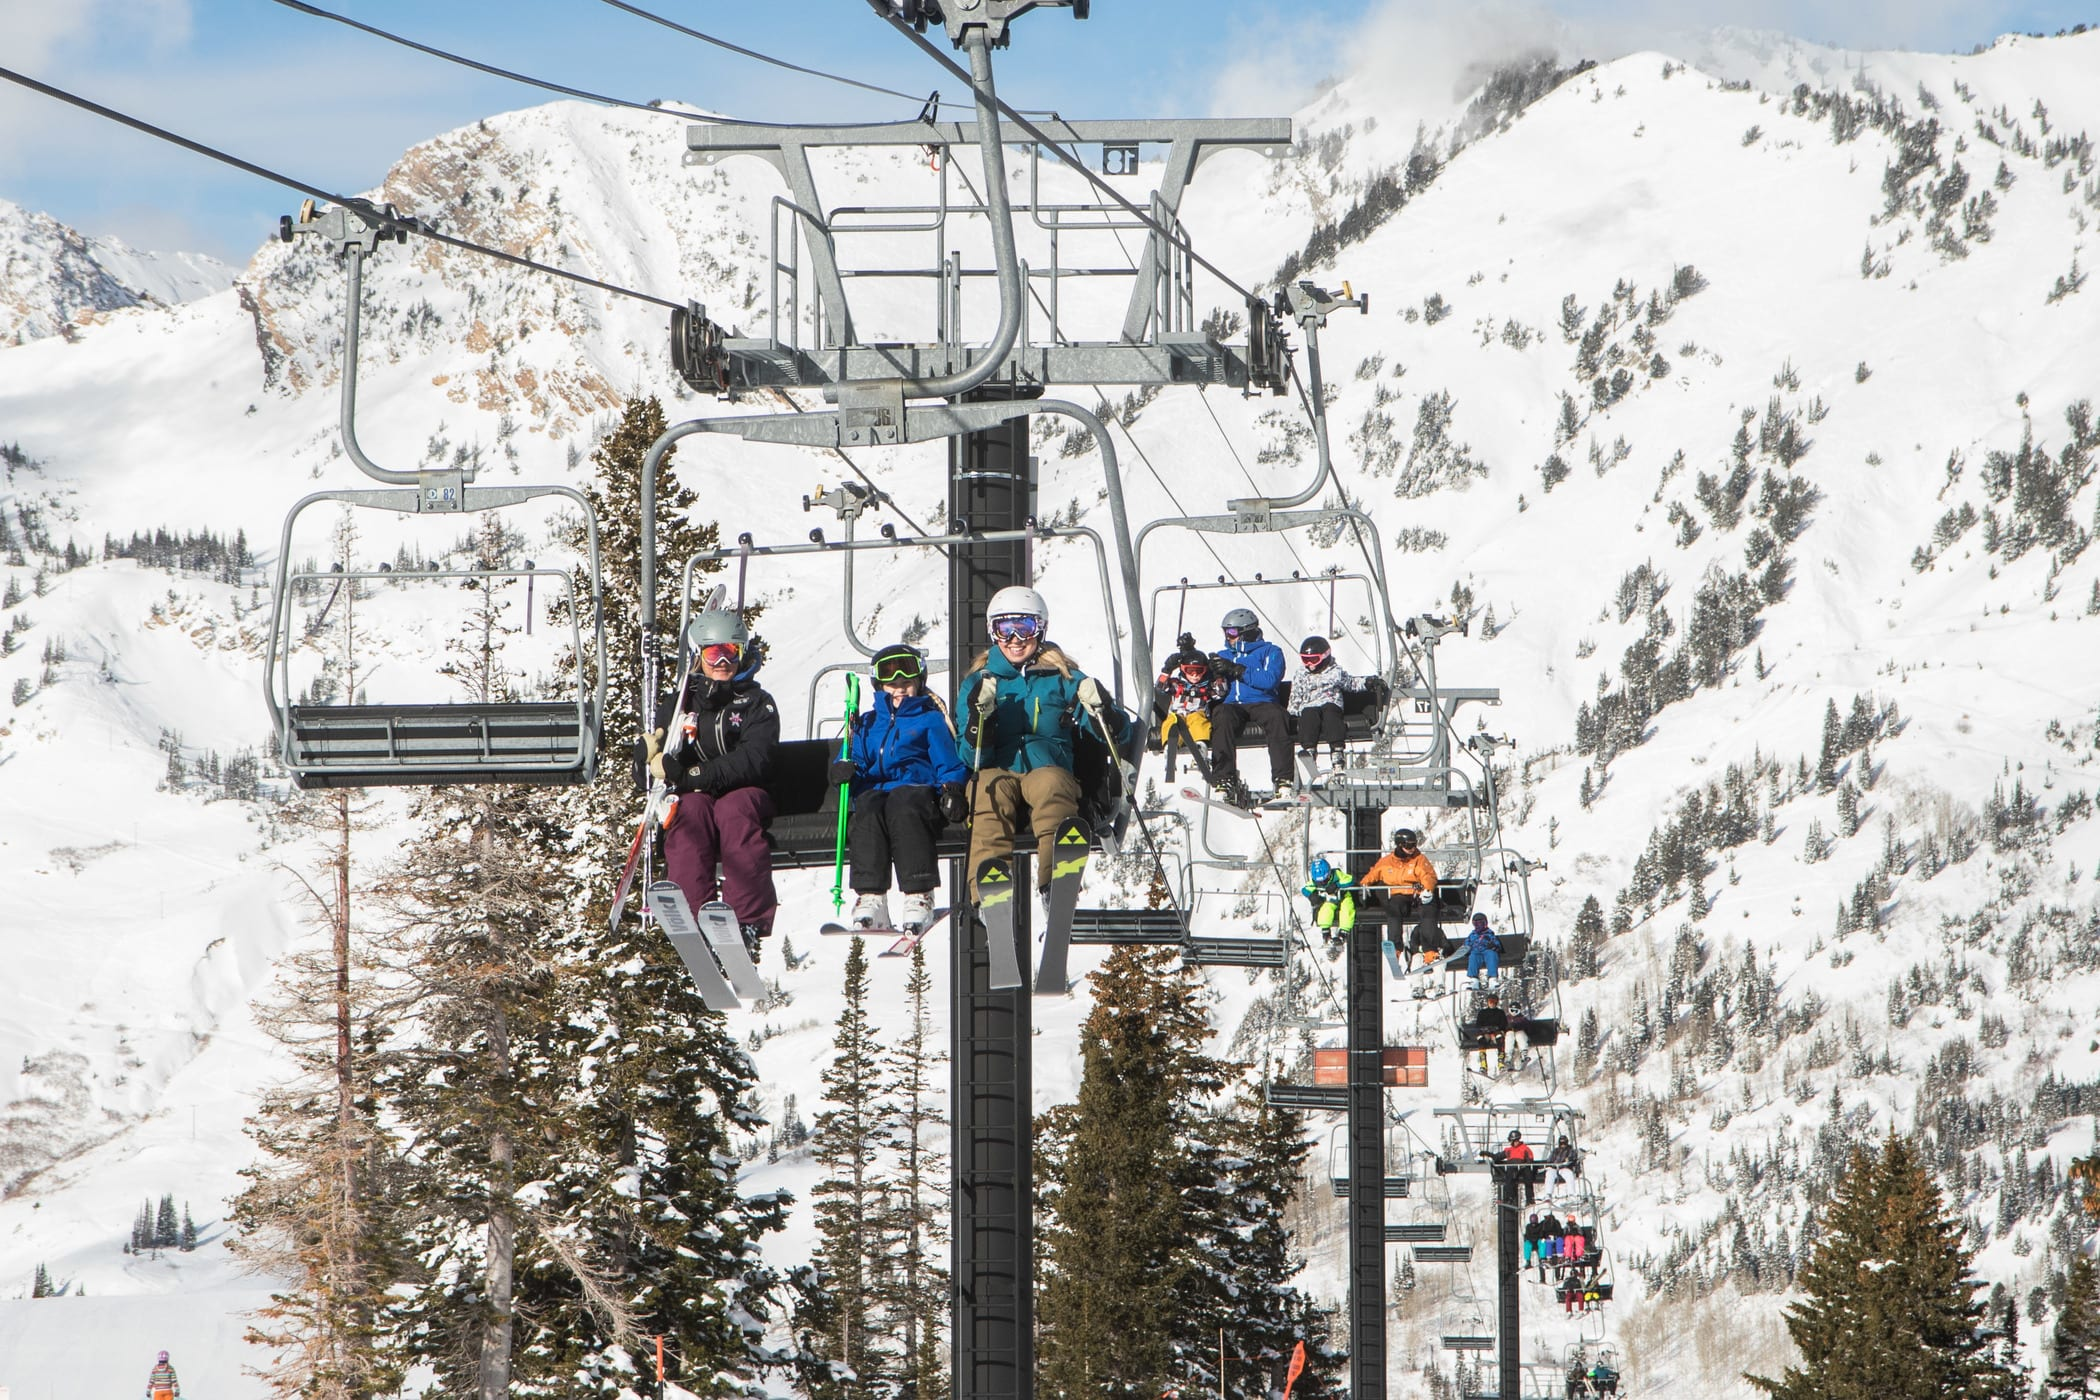 At just $39 for an entire season, adults and children can ski the Sunnyside lift after 3pm every day.